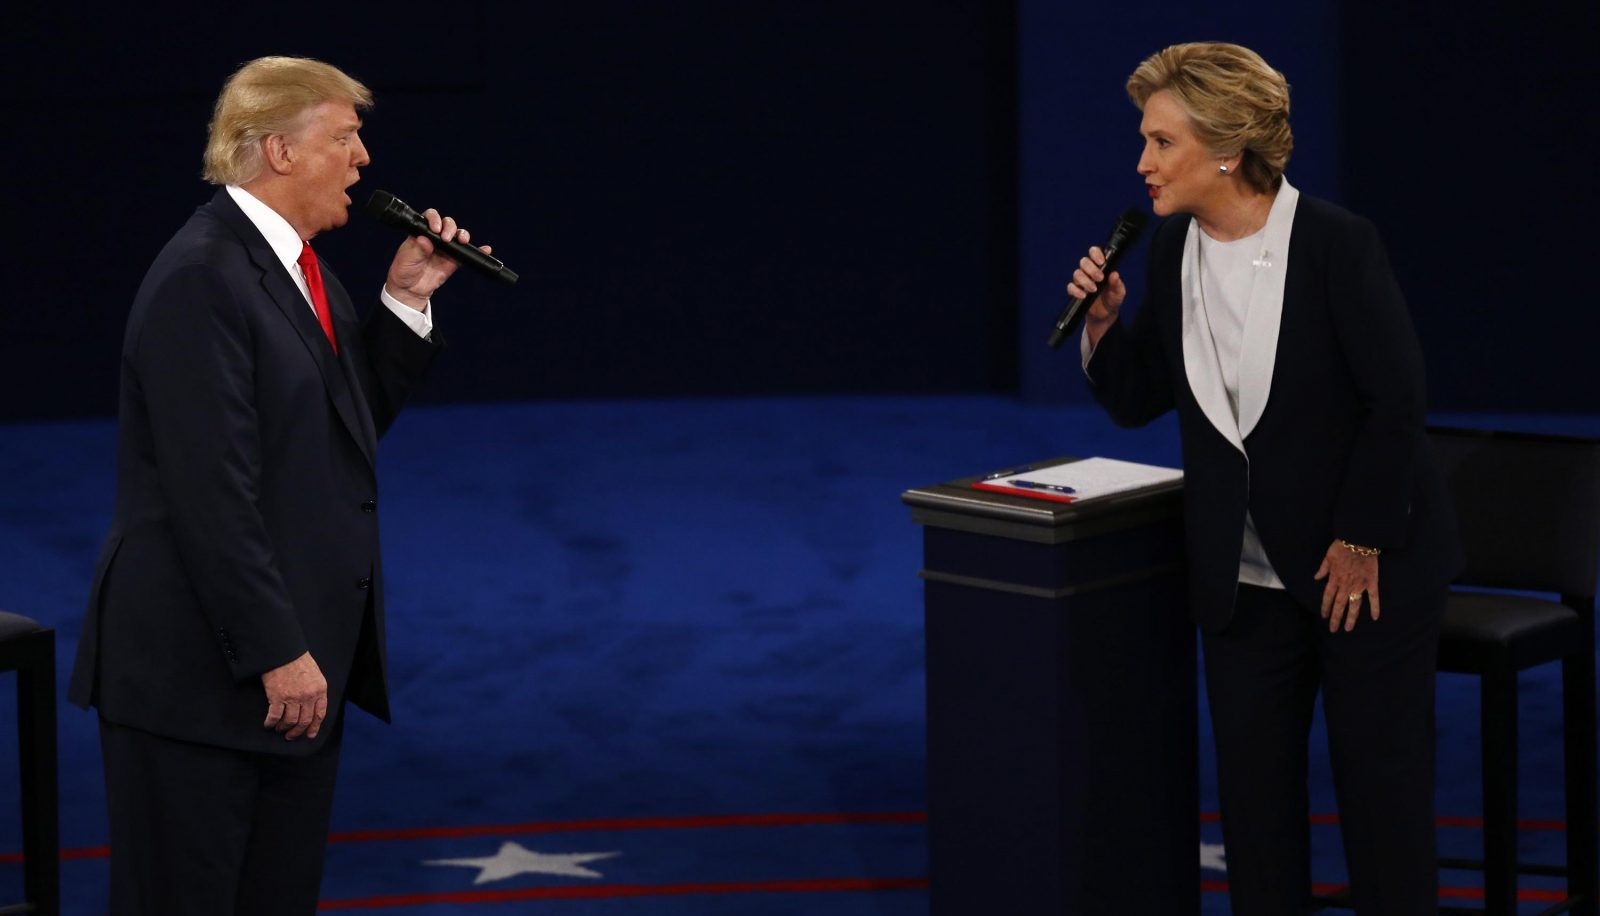 Donald Trump and Hillary Clinton spar at the presidential debate at Washington University. (Bloomberg photo by Andrew Harrer)